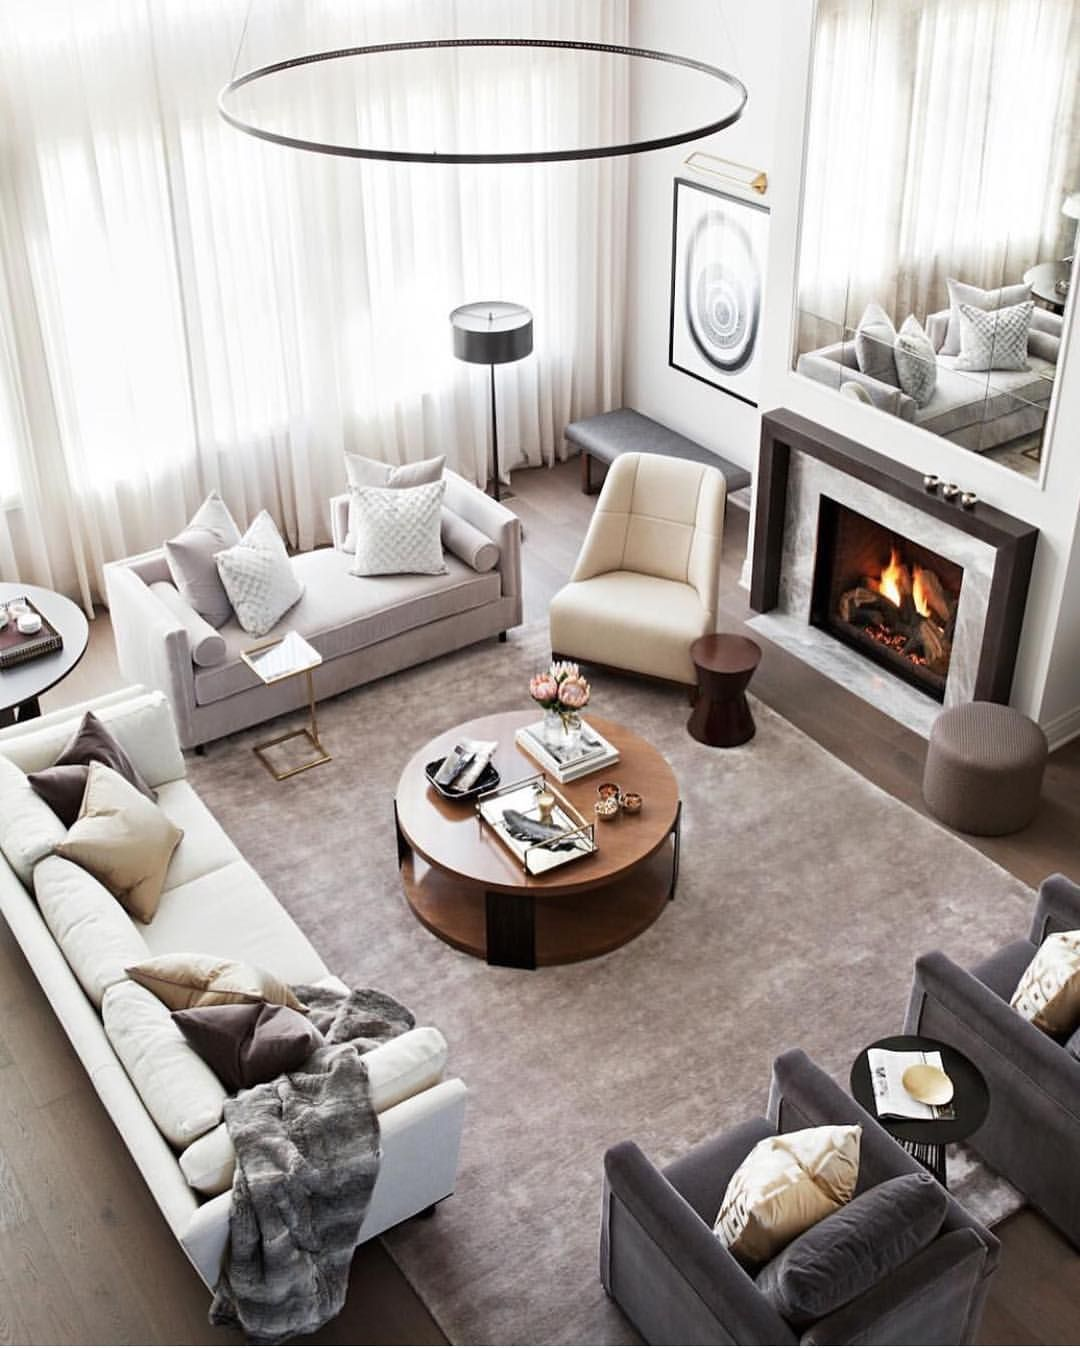 1 417 Likes 31 Comments Elizabeth Metcalfe Interiors